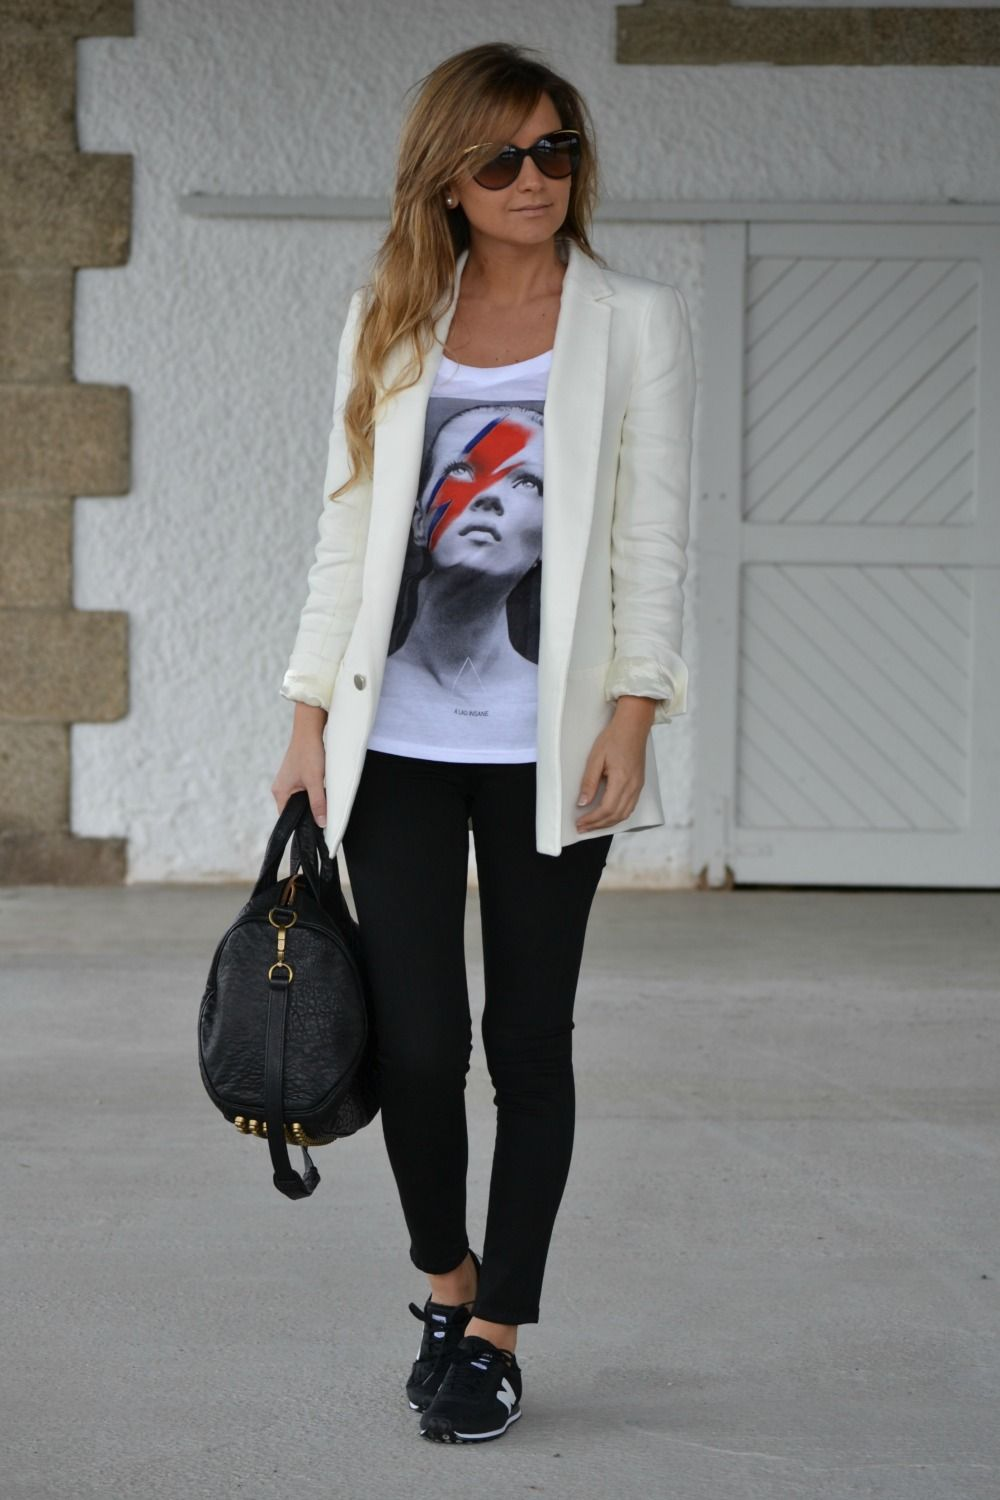 ebe81249ea3 blazer + graphic tee + tennis shoes   I like it